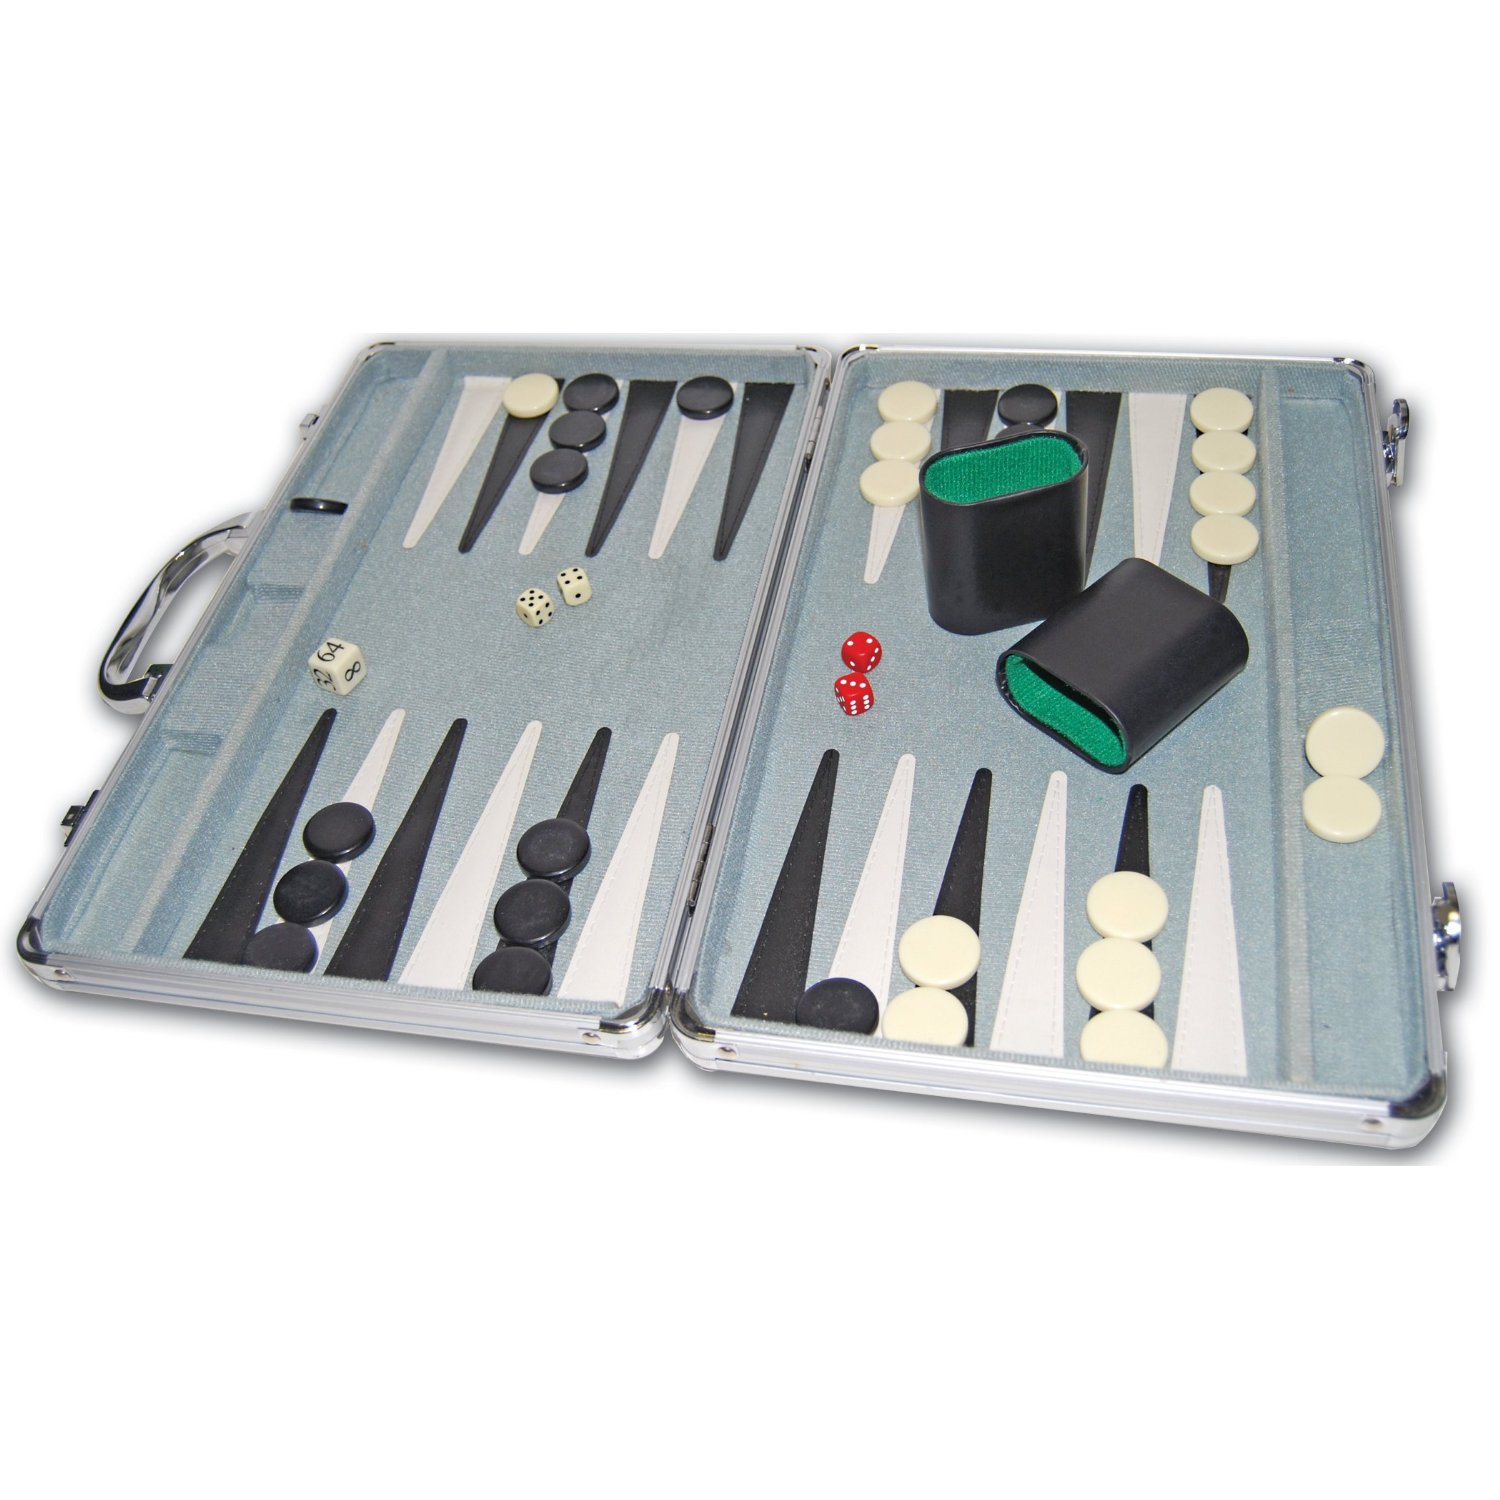 Cardinal Supplies Deluxe Backgammon Game Durable Aluminum Case at Sears.com